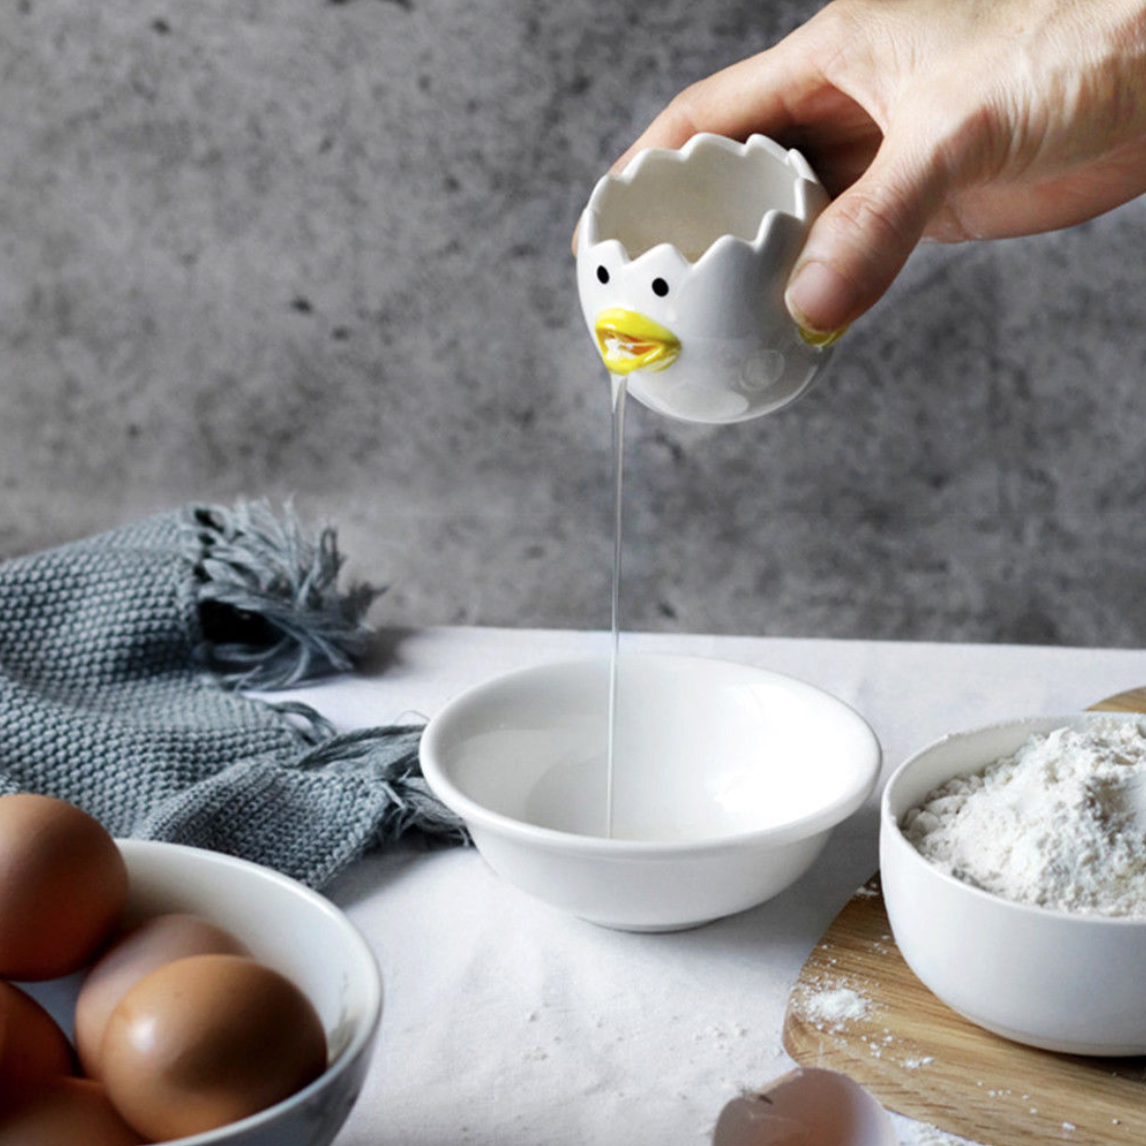 Capture d'écran 2018-01-18 à 10.26.16.png Download free STL file Tweety Egg Separator (Kitchen) • Design to 3D print, MuSSy